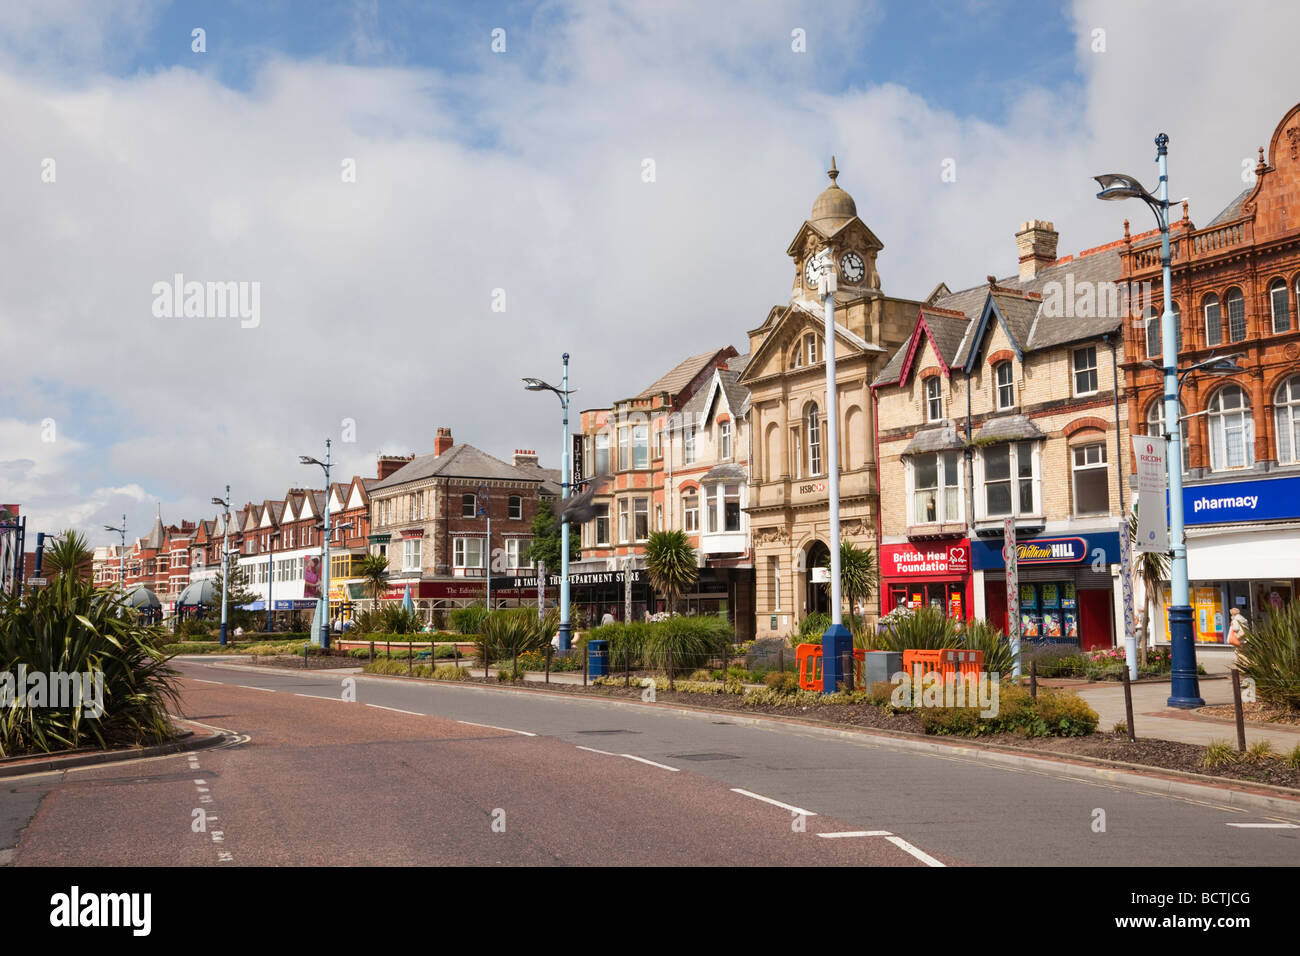 Wide main street in St Anne's Square in Lytham St Annes Lancashire England UK - Stock Image